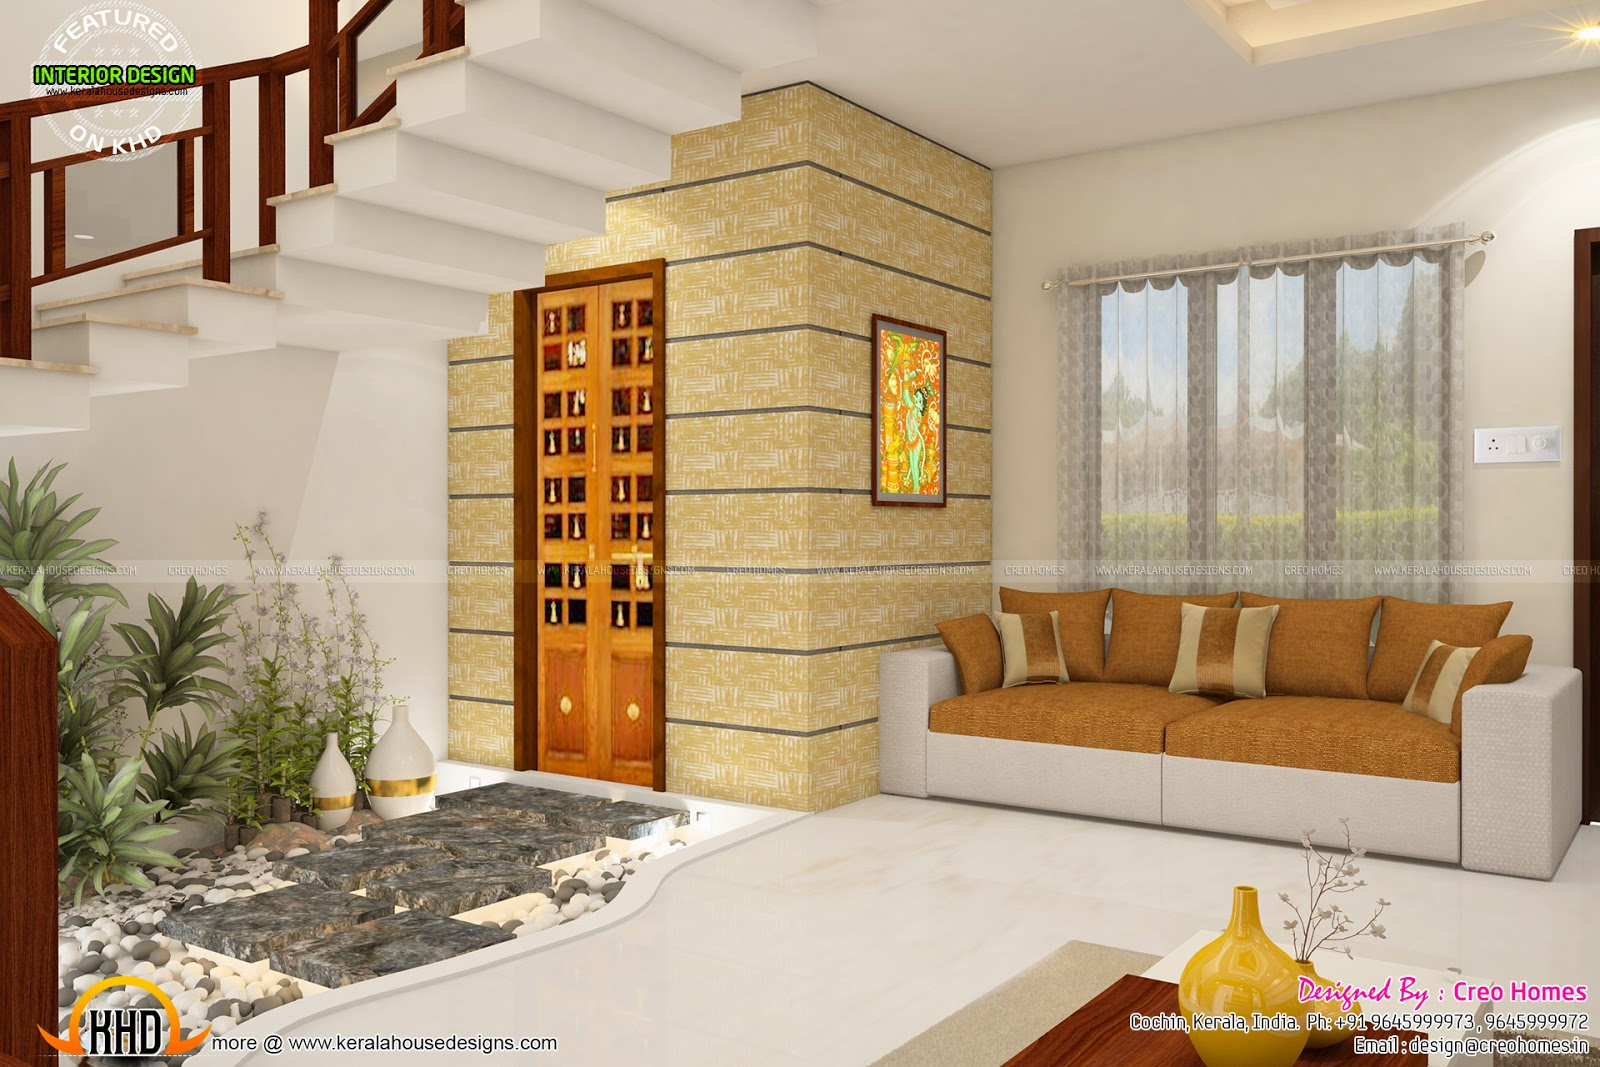 Total home interior solutions by creo homes kerala home for Picture of interior designs of house